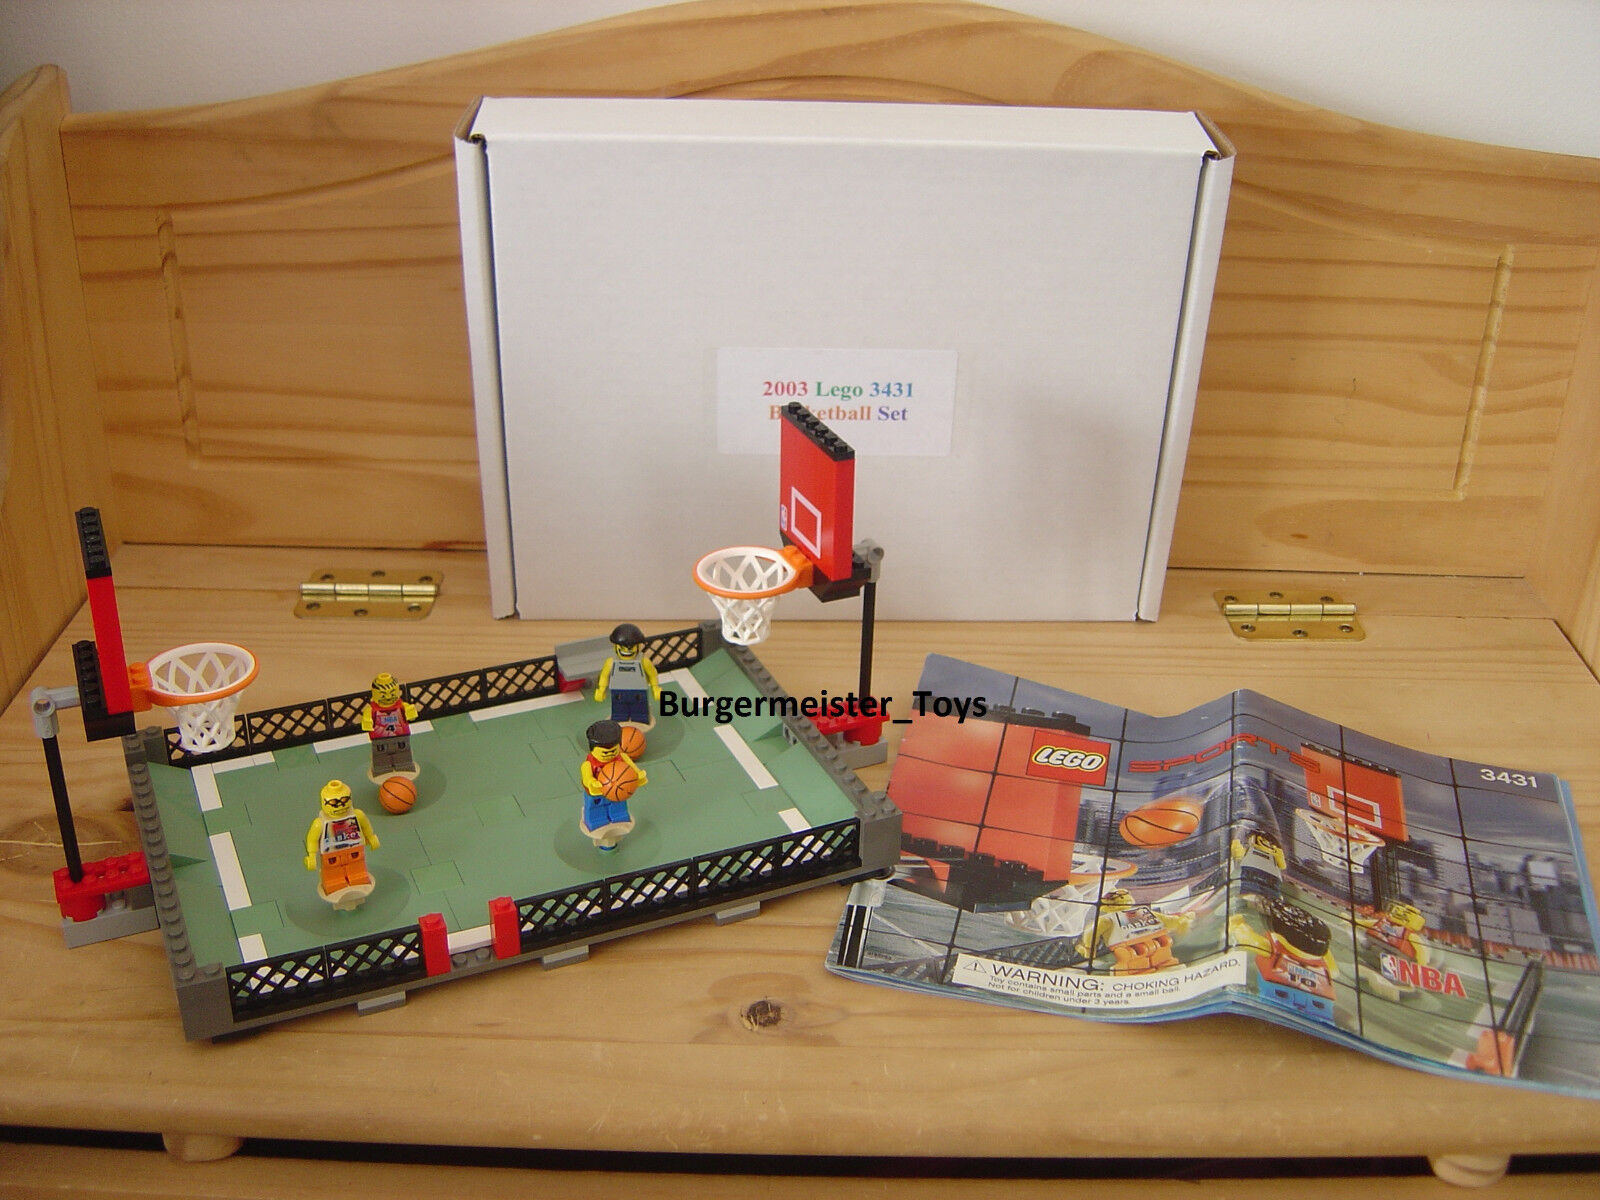 2003 Lego NBA Basketball Set 3431 Streetball 2 vs. 2 100% complete